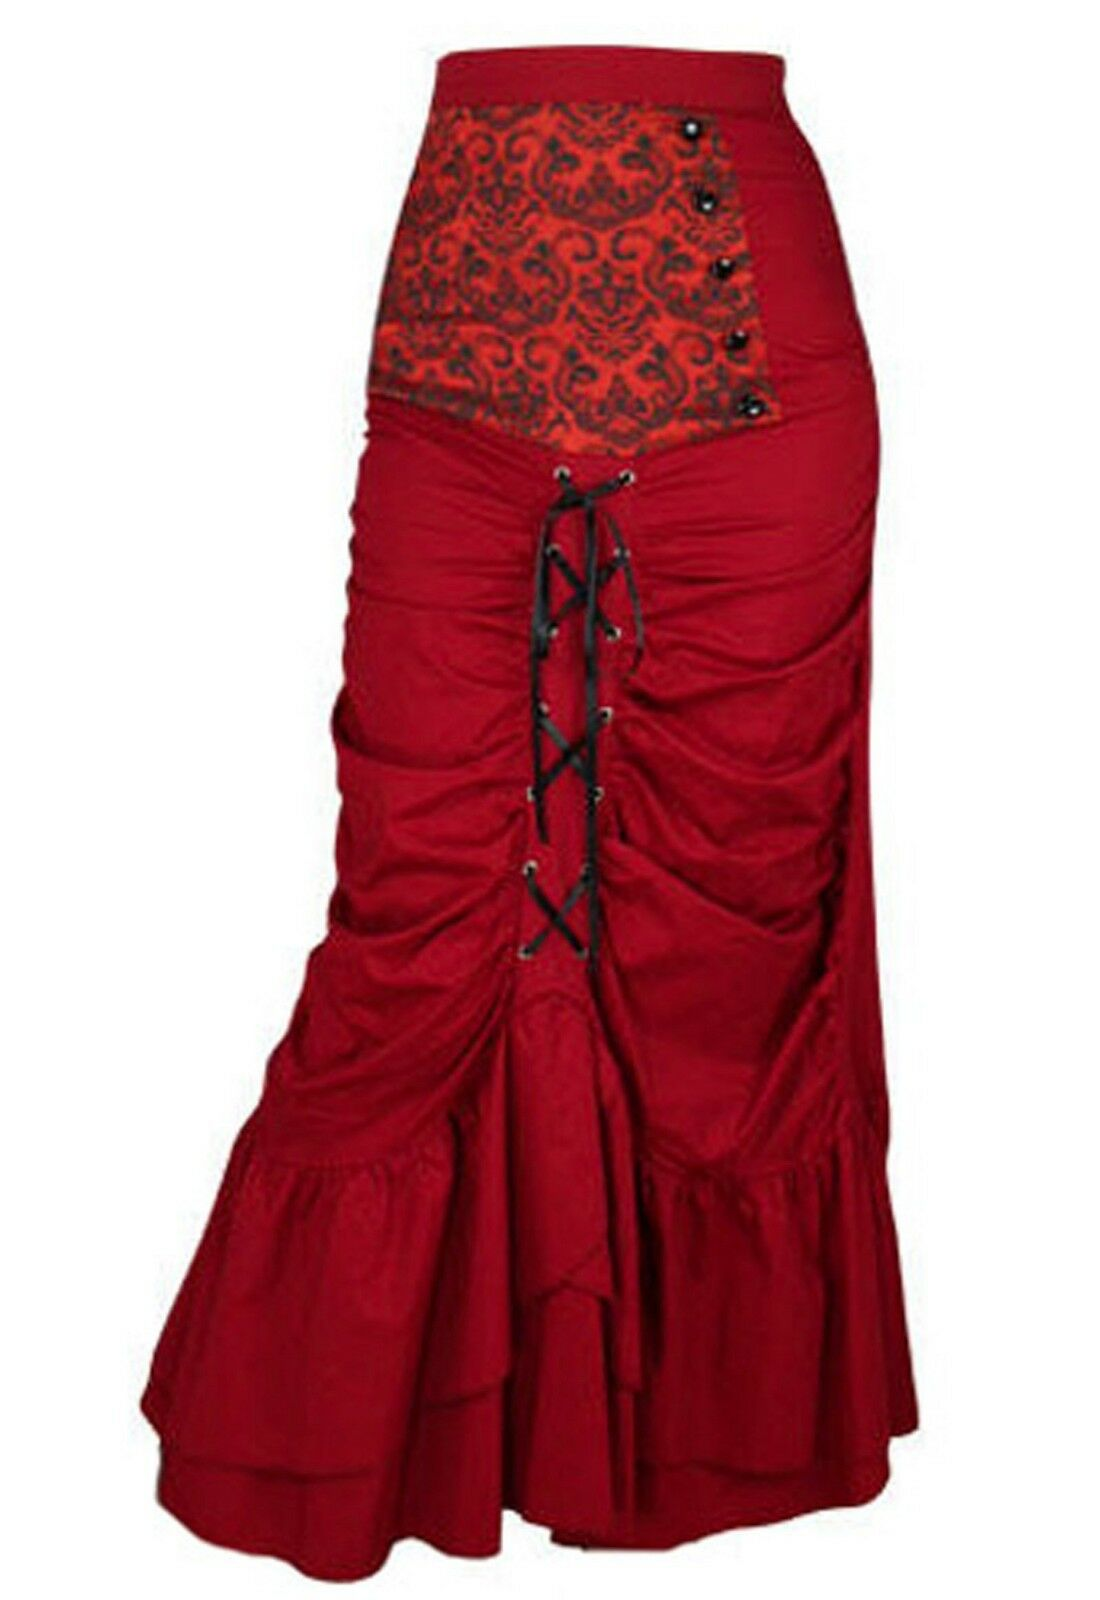 6 8 – 20 GOTHIC VICTORIAN SALOON WENCH RED CORSET LONG TIERED GYPSY BUSTLE SKIRT